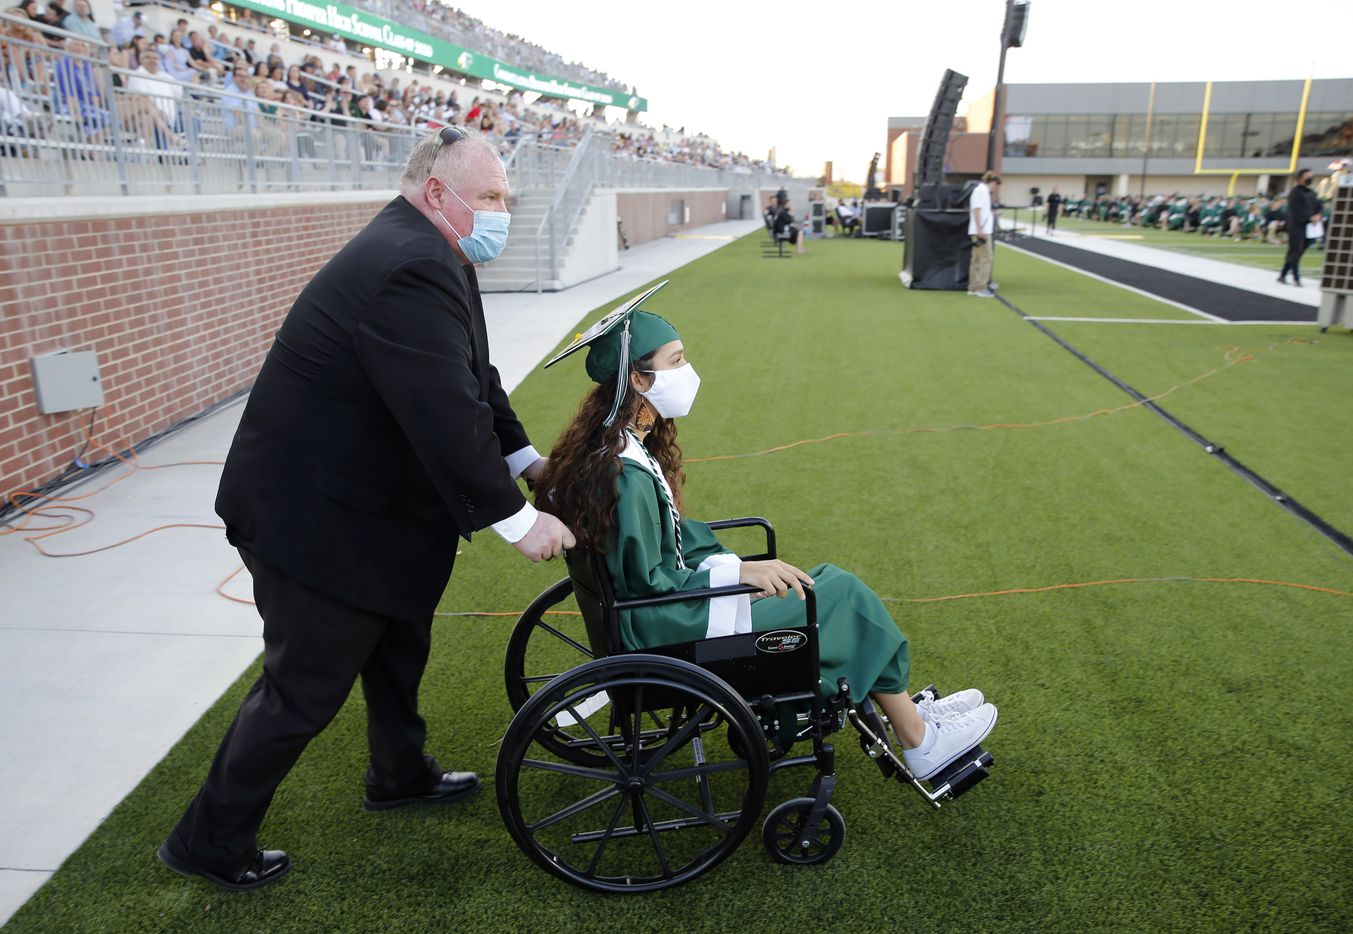 Prosper High School softball player Lexie Bell is pushed towards the stage by Prosper softball coach Todd Rainwater during Prosper High School's graduation ceremony at Children's Health Stadium in Prosper, Texas on Friday, June 5, 2020. Bell signed to play softball at St. Edward's University. But she was recently diagnosed with Ewing Sarcoma, a rare form of cancer.